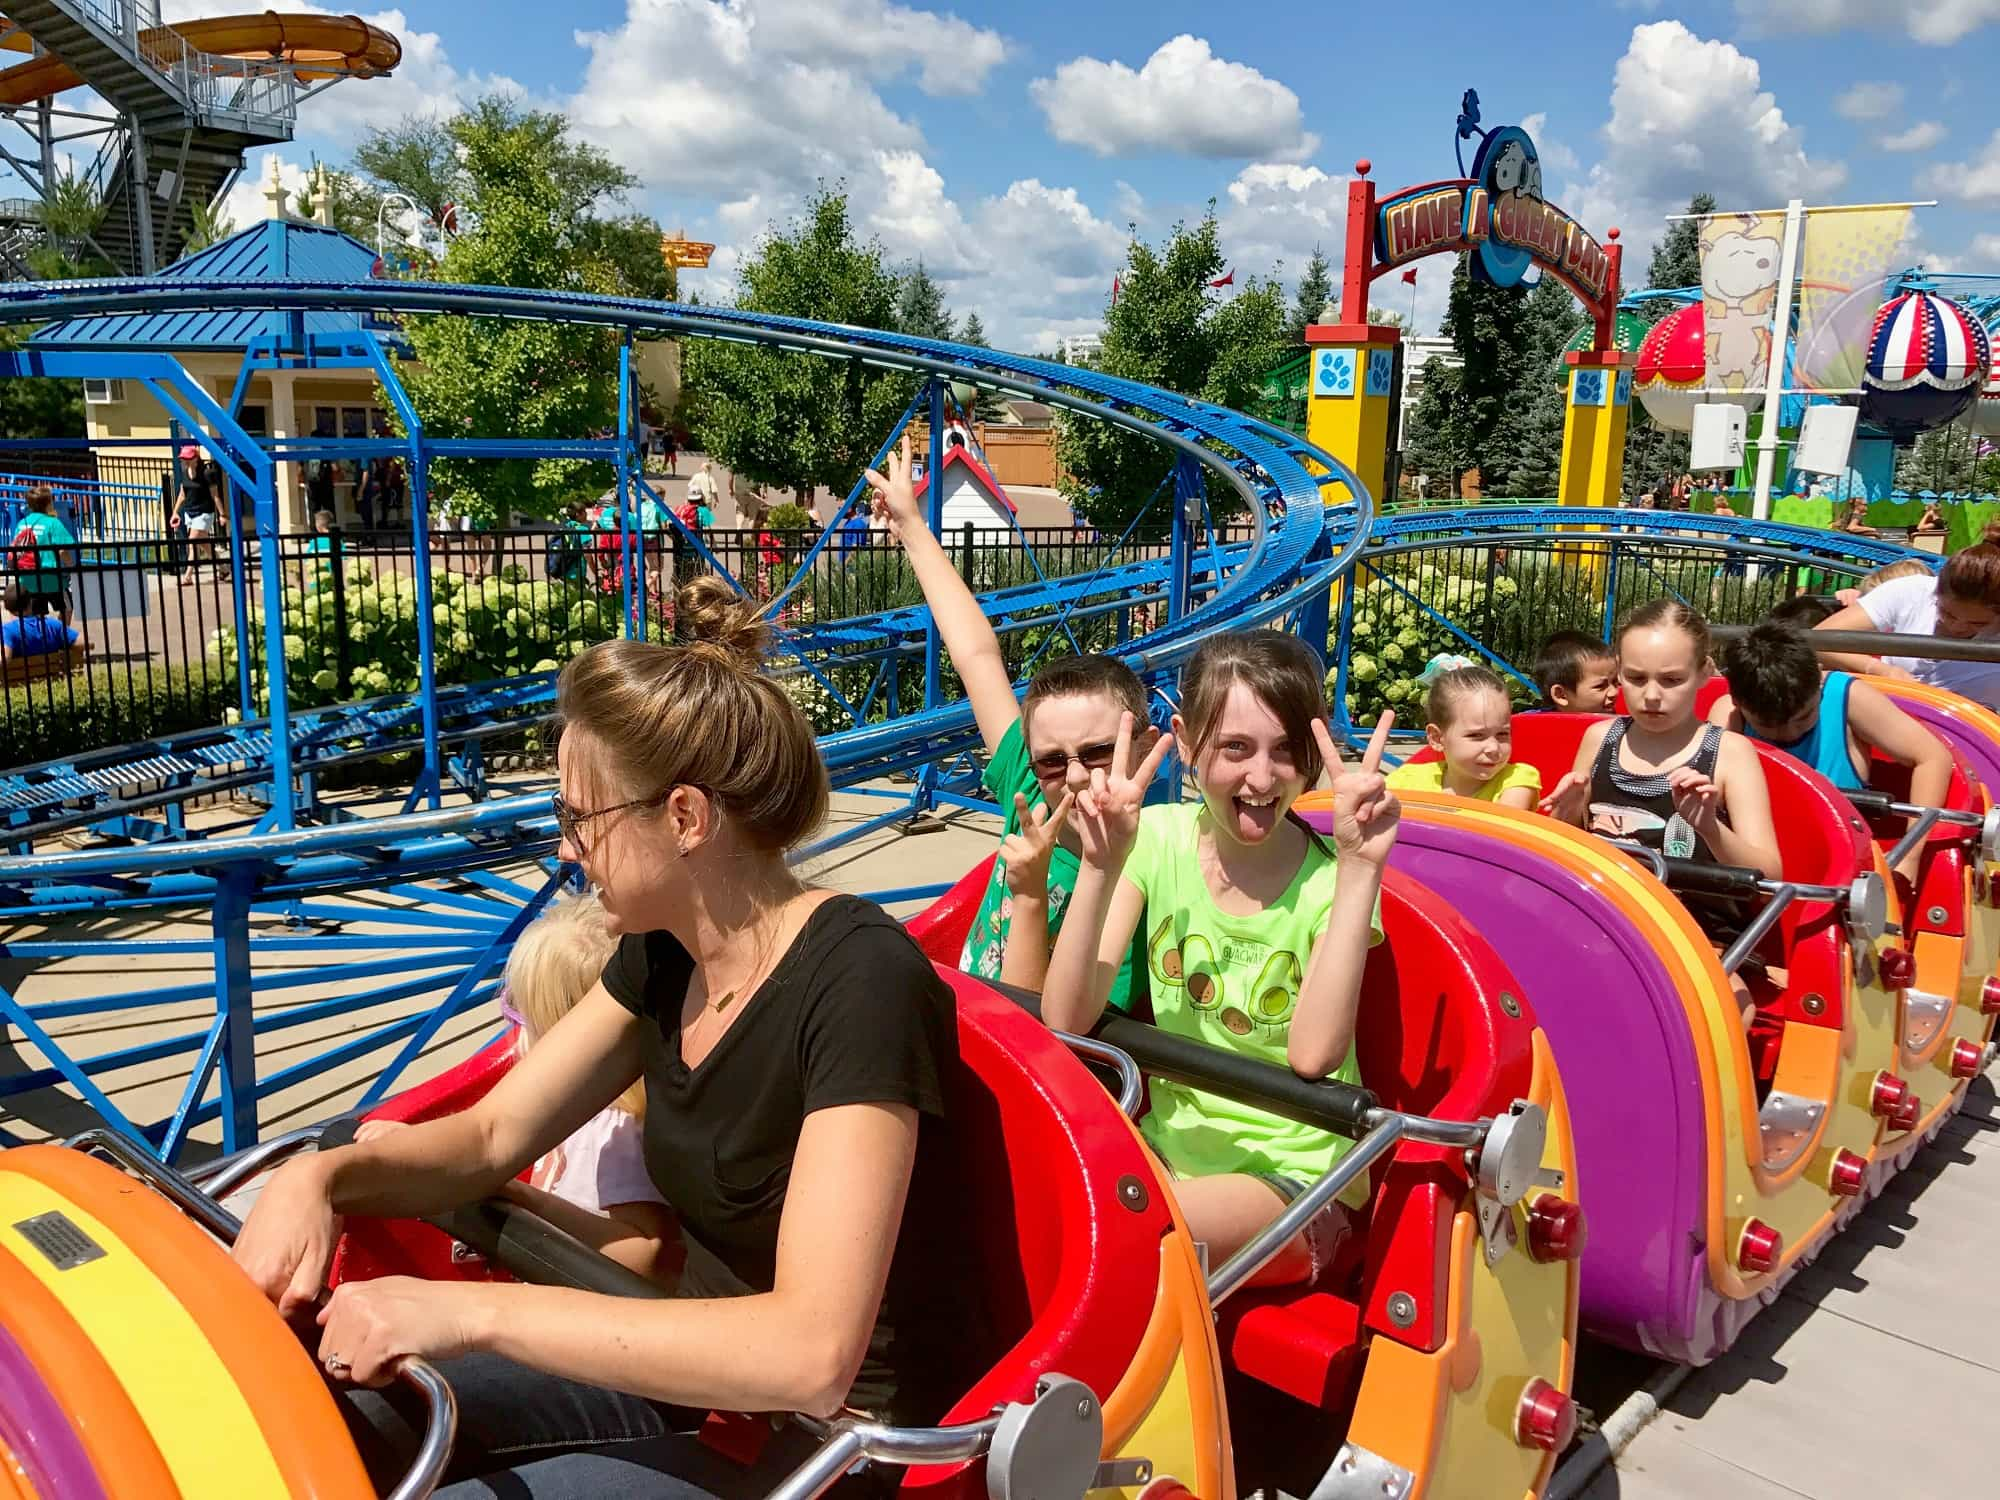 Cosmic Coaster in Planet Snoopy at Valleyfair in Minnesota